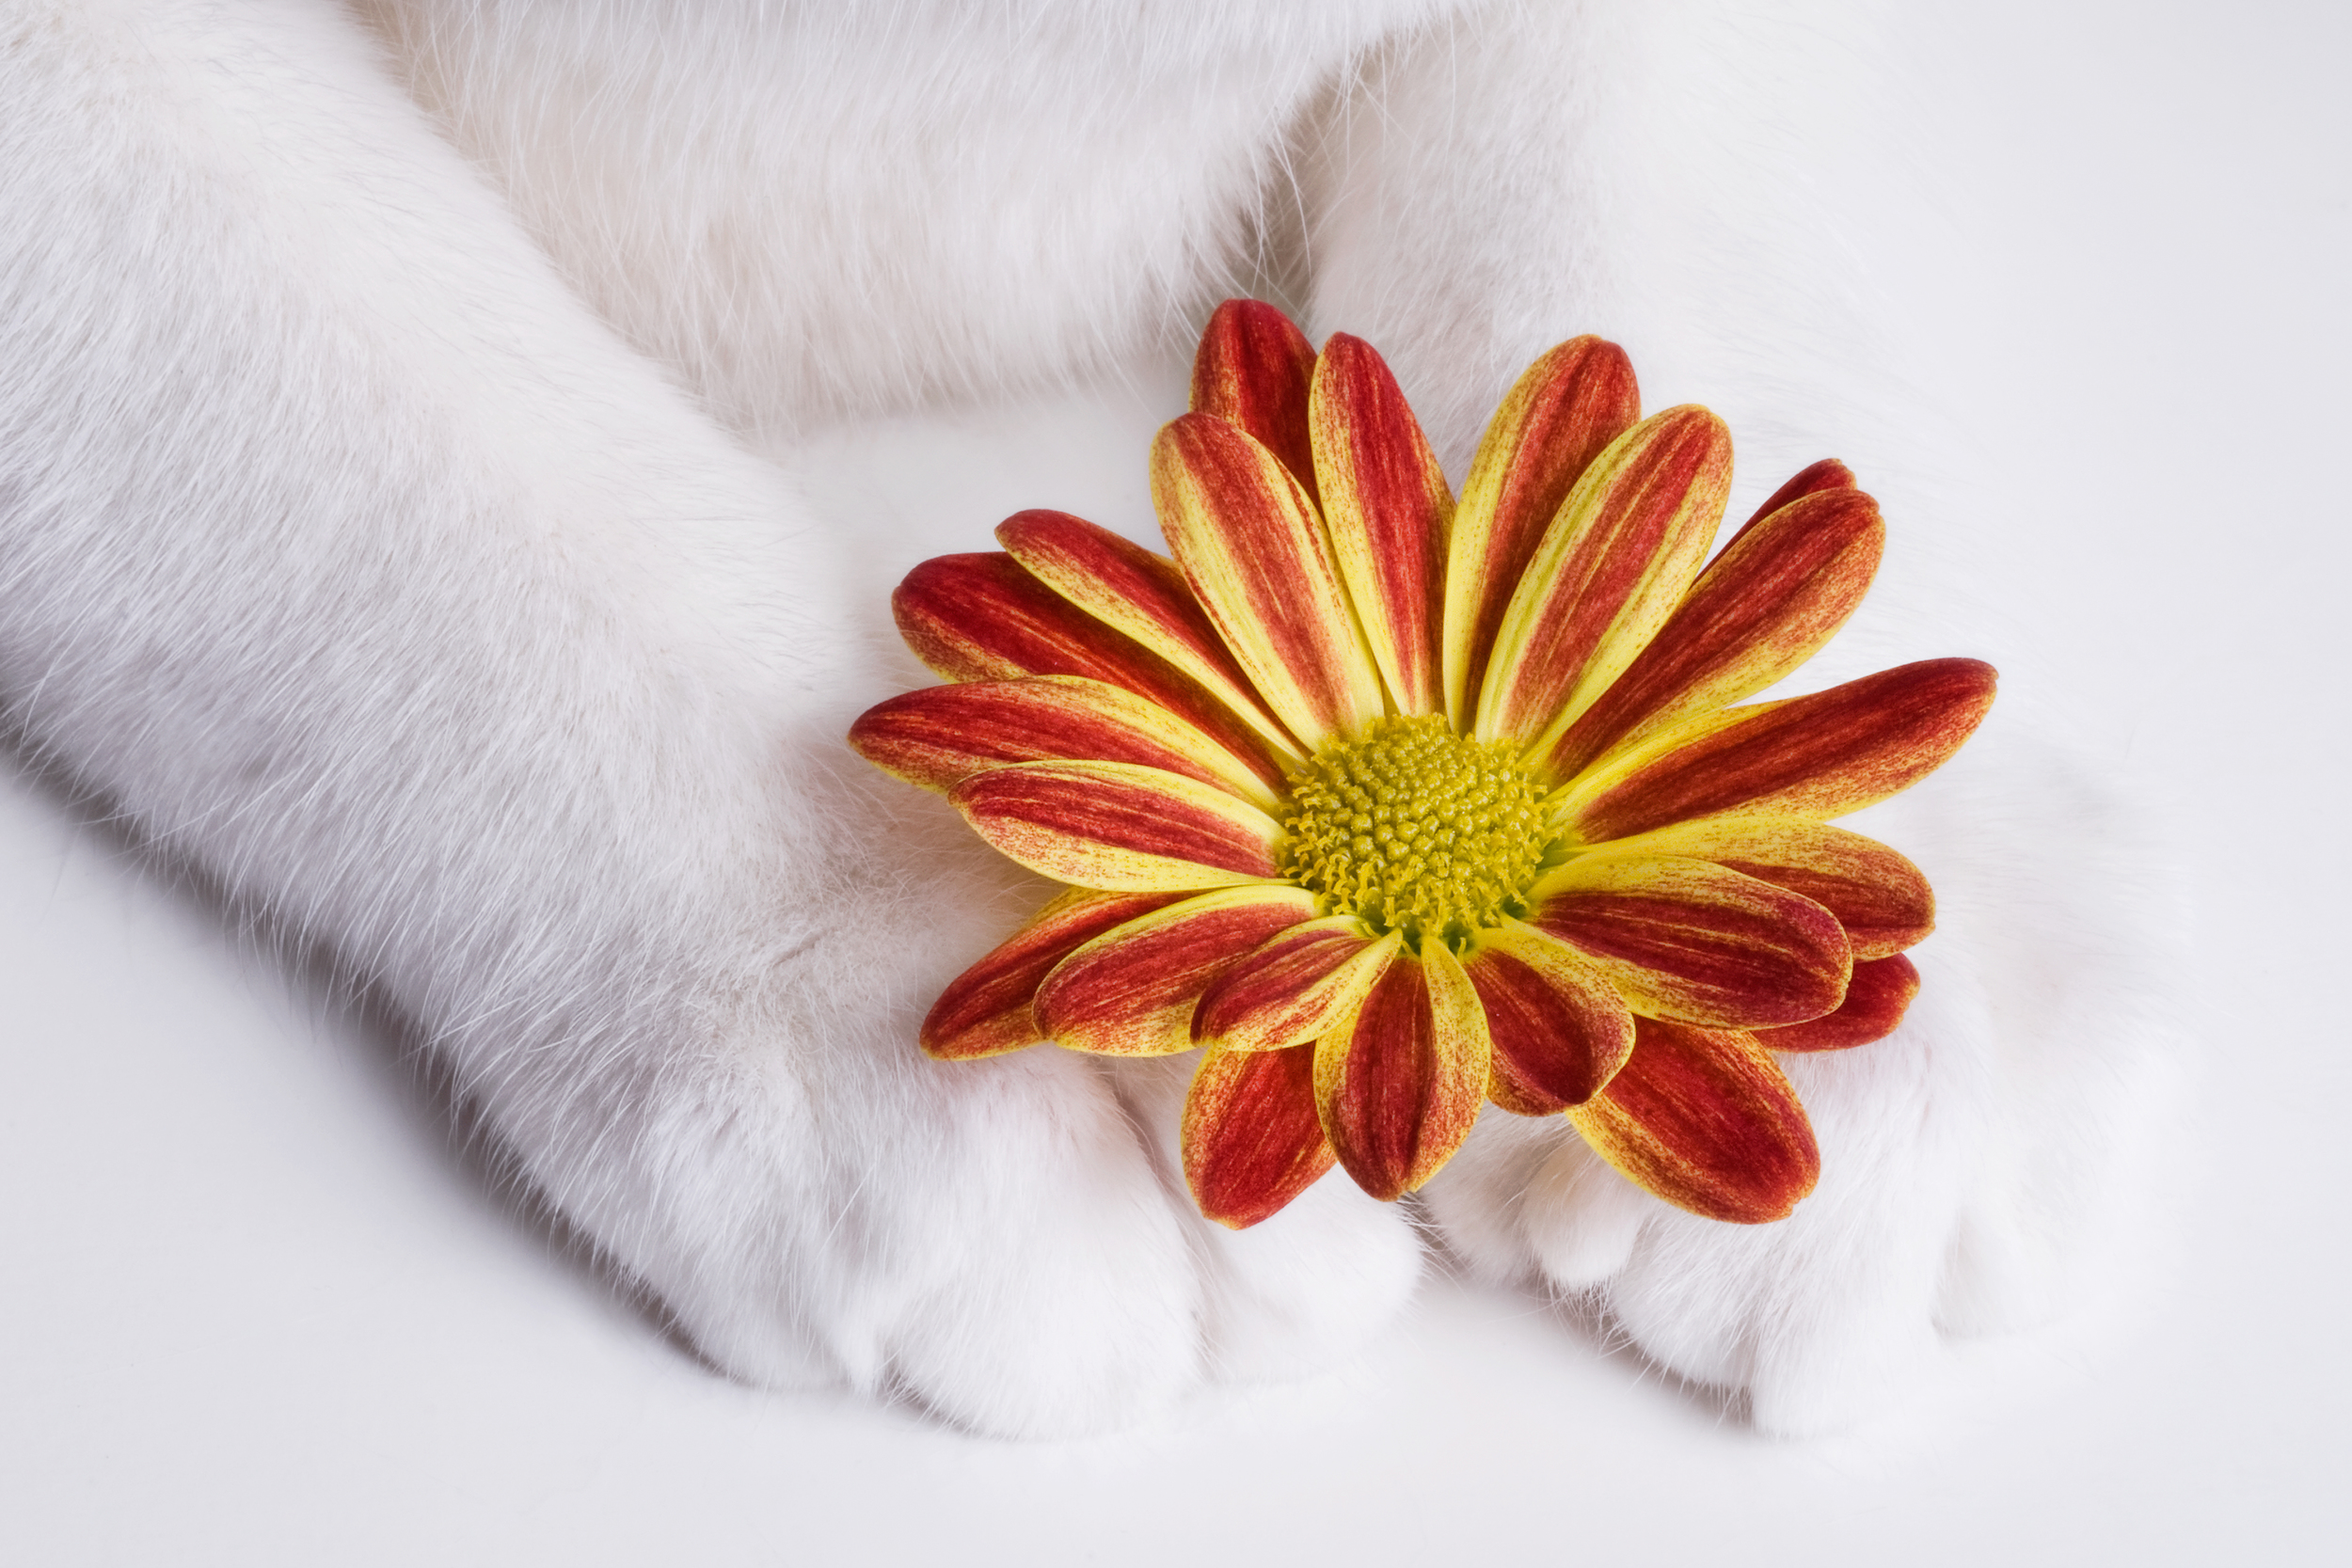 Petals and Paws.jpg